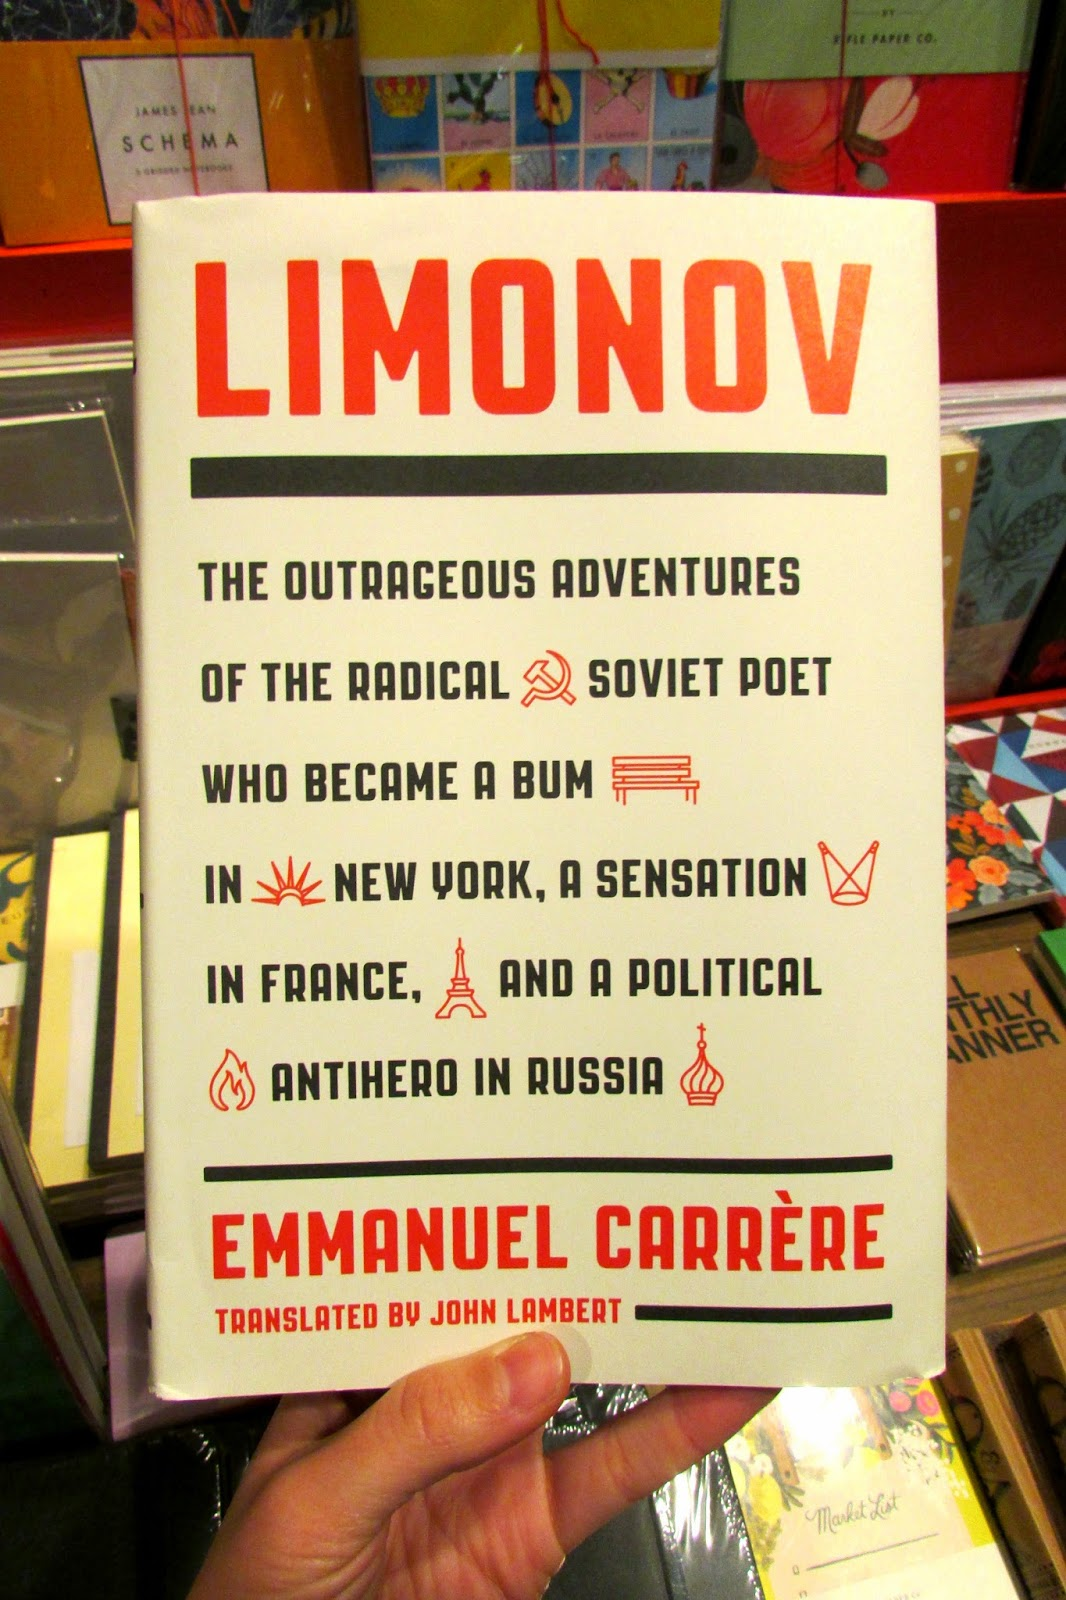 Limonov: The Outrageous Adventures Of The Radical Soviet Poet Who Became A  Bum In New York, A Sensation In France, And A Political Antihero In Russia  Is A